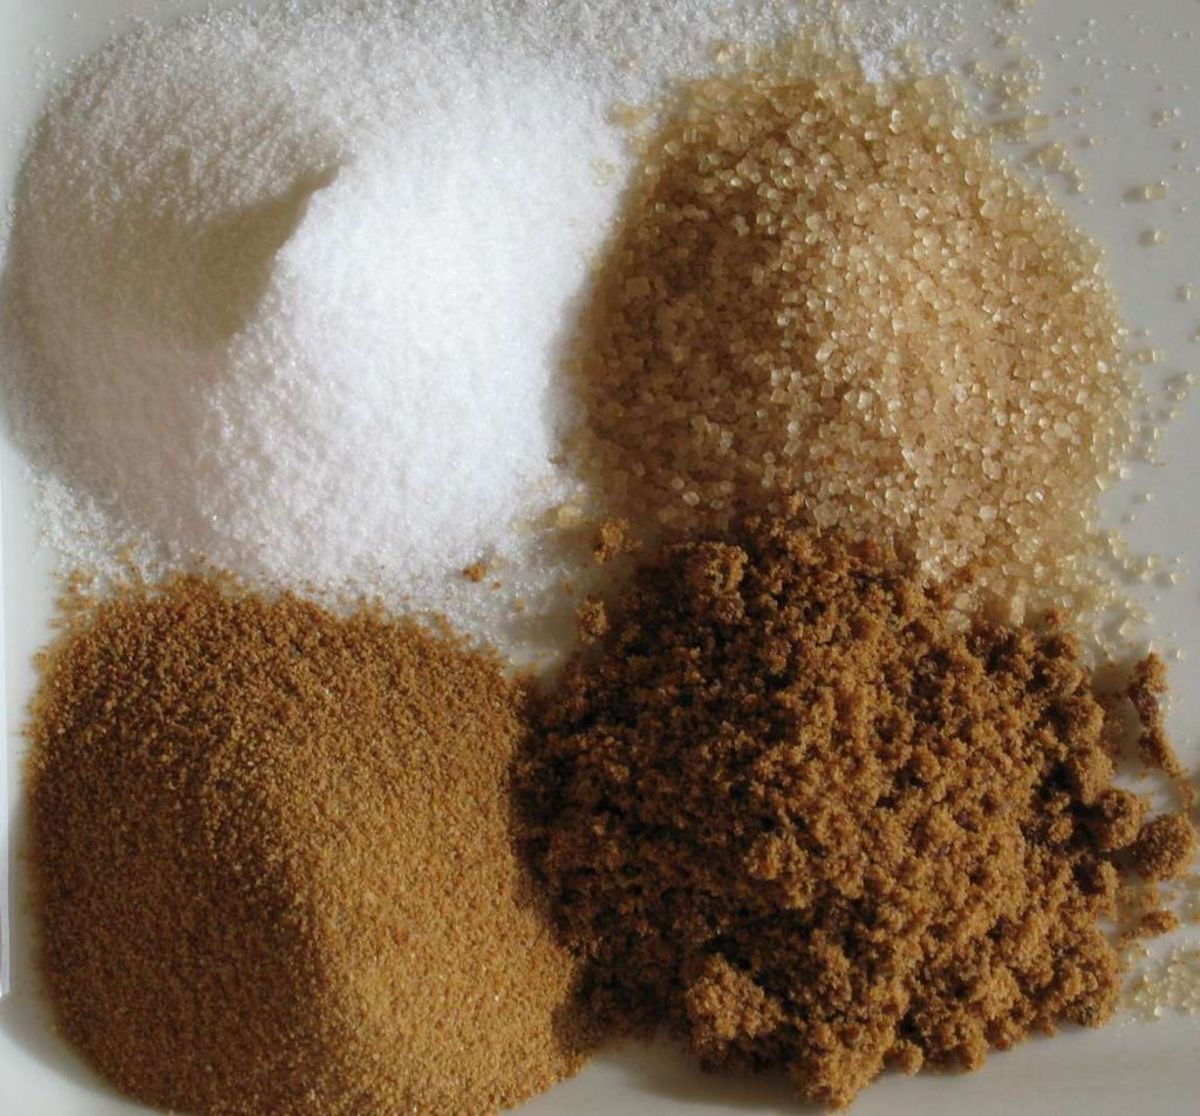 Various stages of sugar purity and refinement. Part of the industrialization of sugar was producing more refined and higher quality sugar.